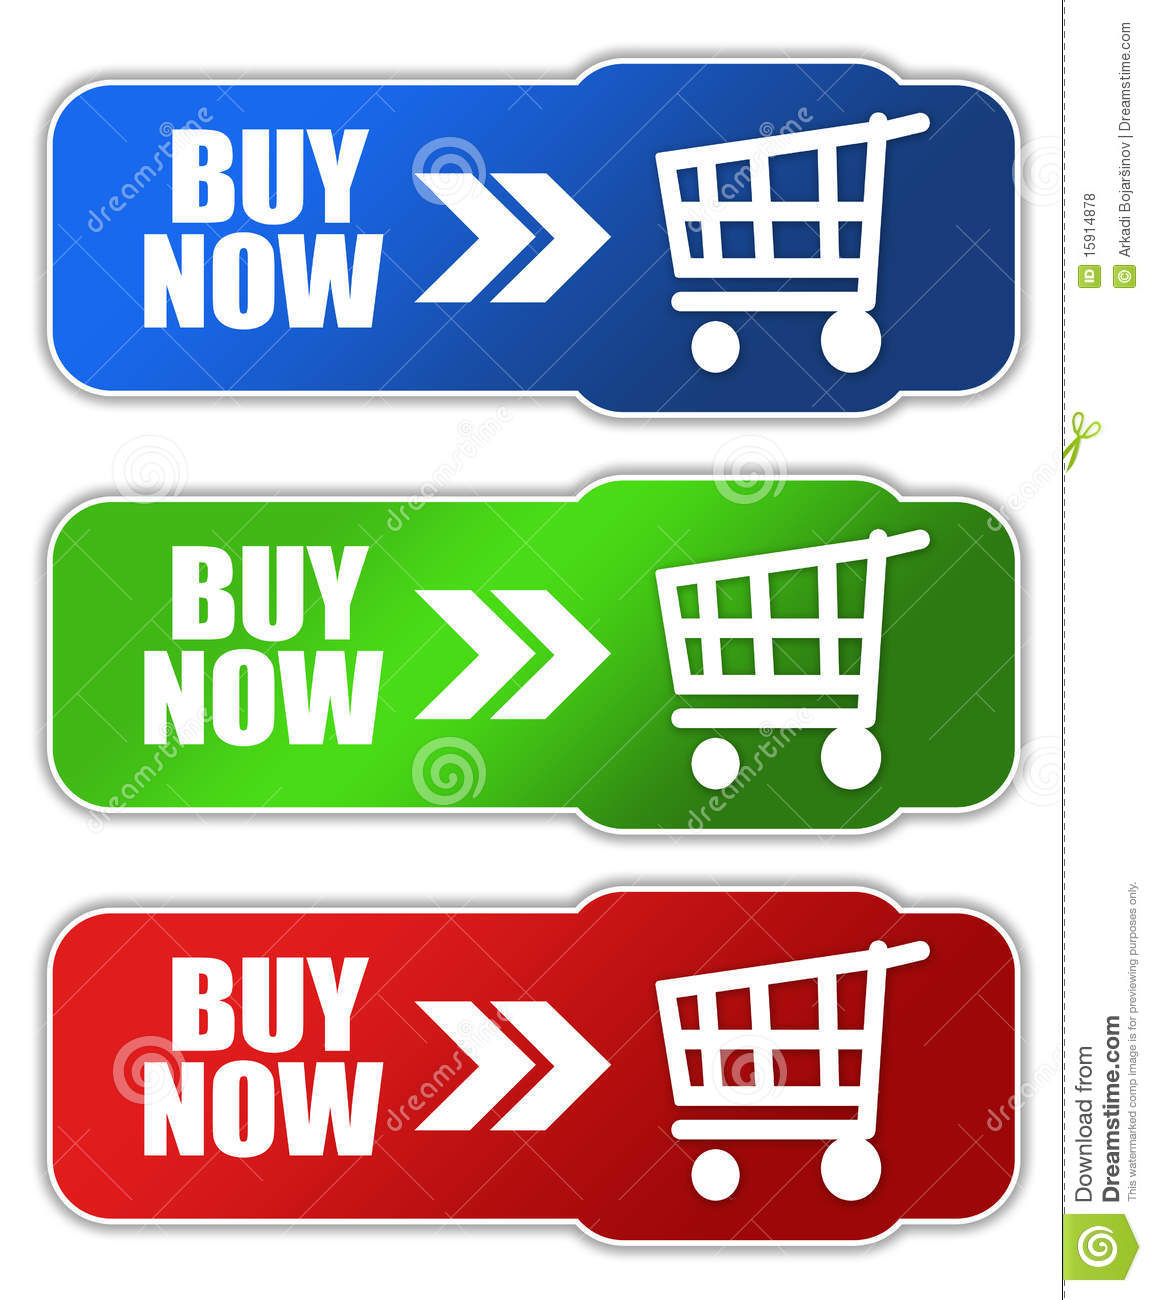 Buy Now Button Stock Illustration. Image Of Advertising